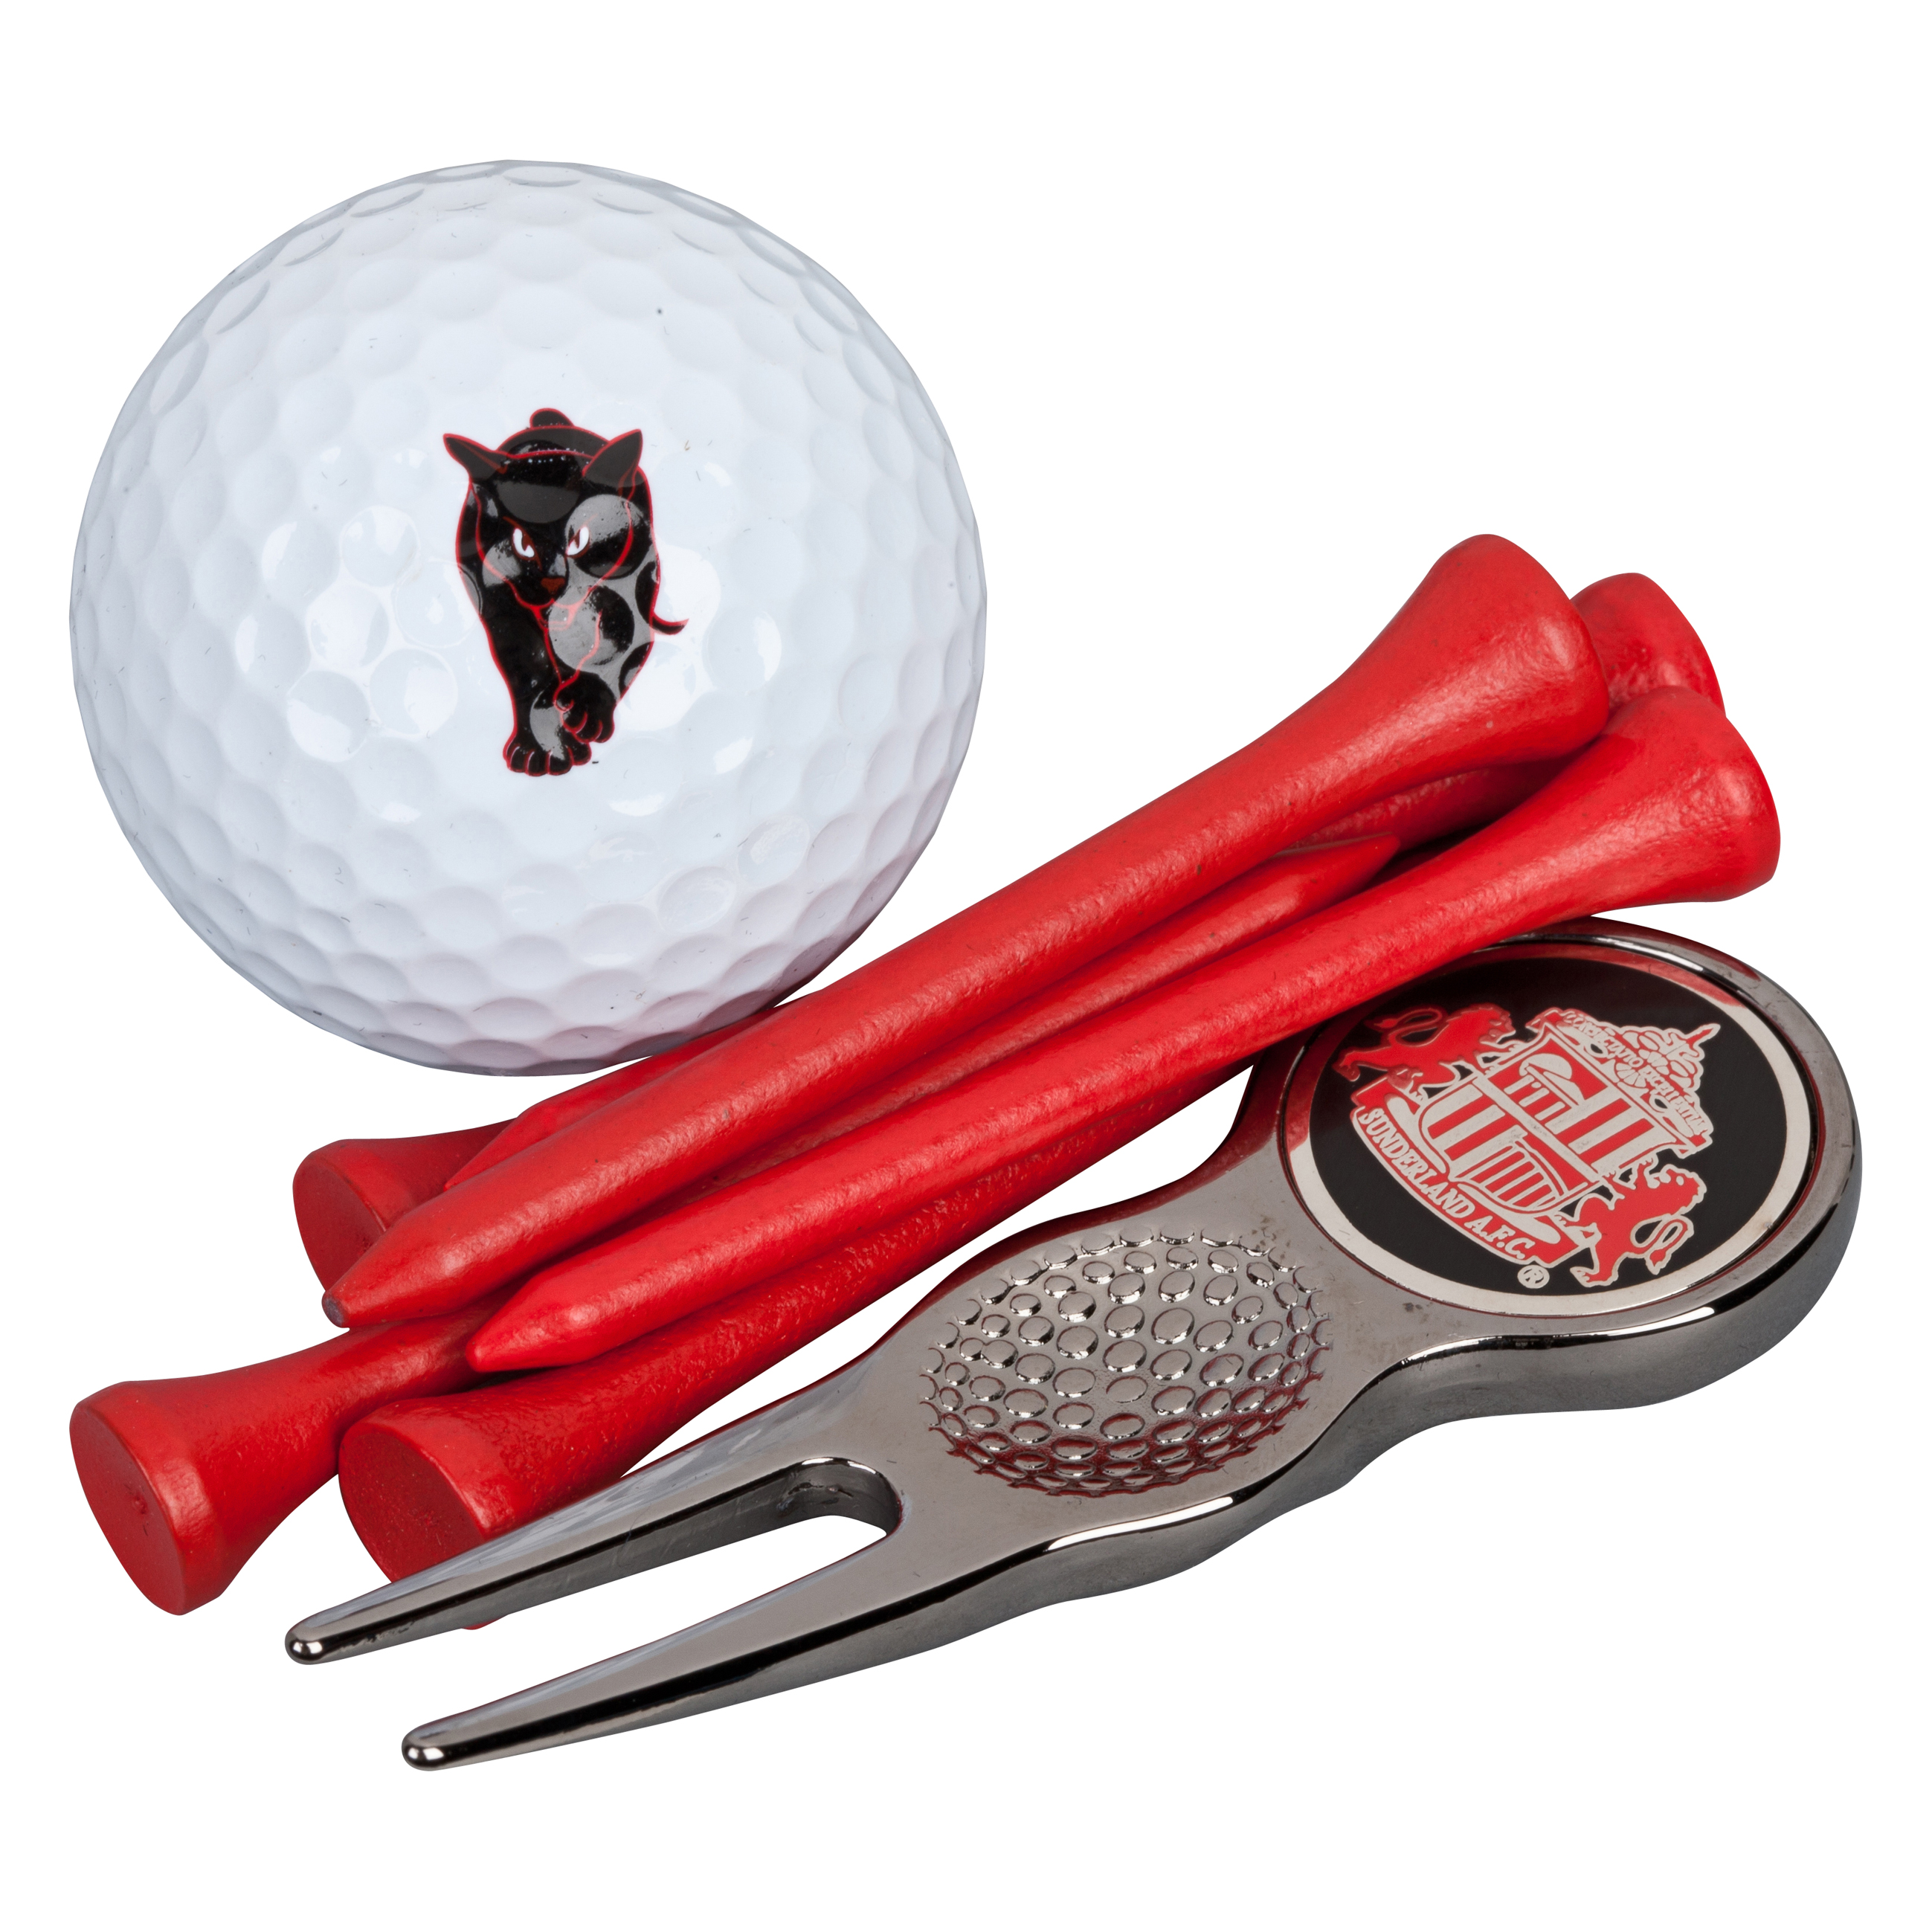 Sunderland Executive Golf Gift Tube